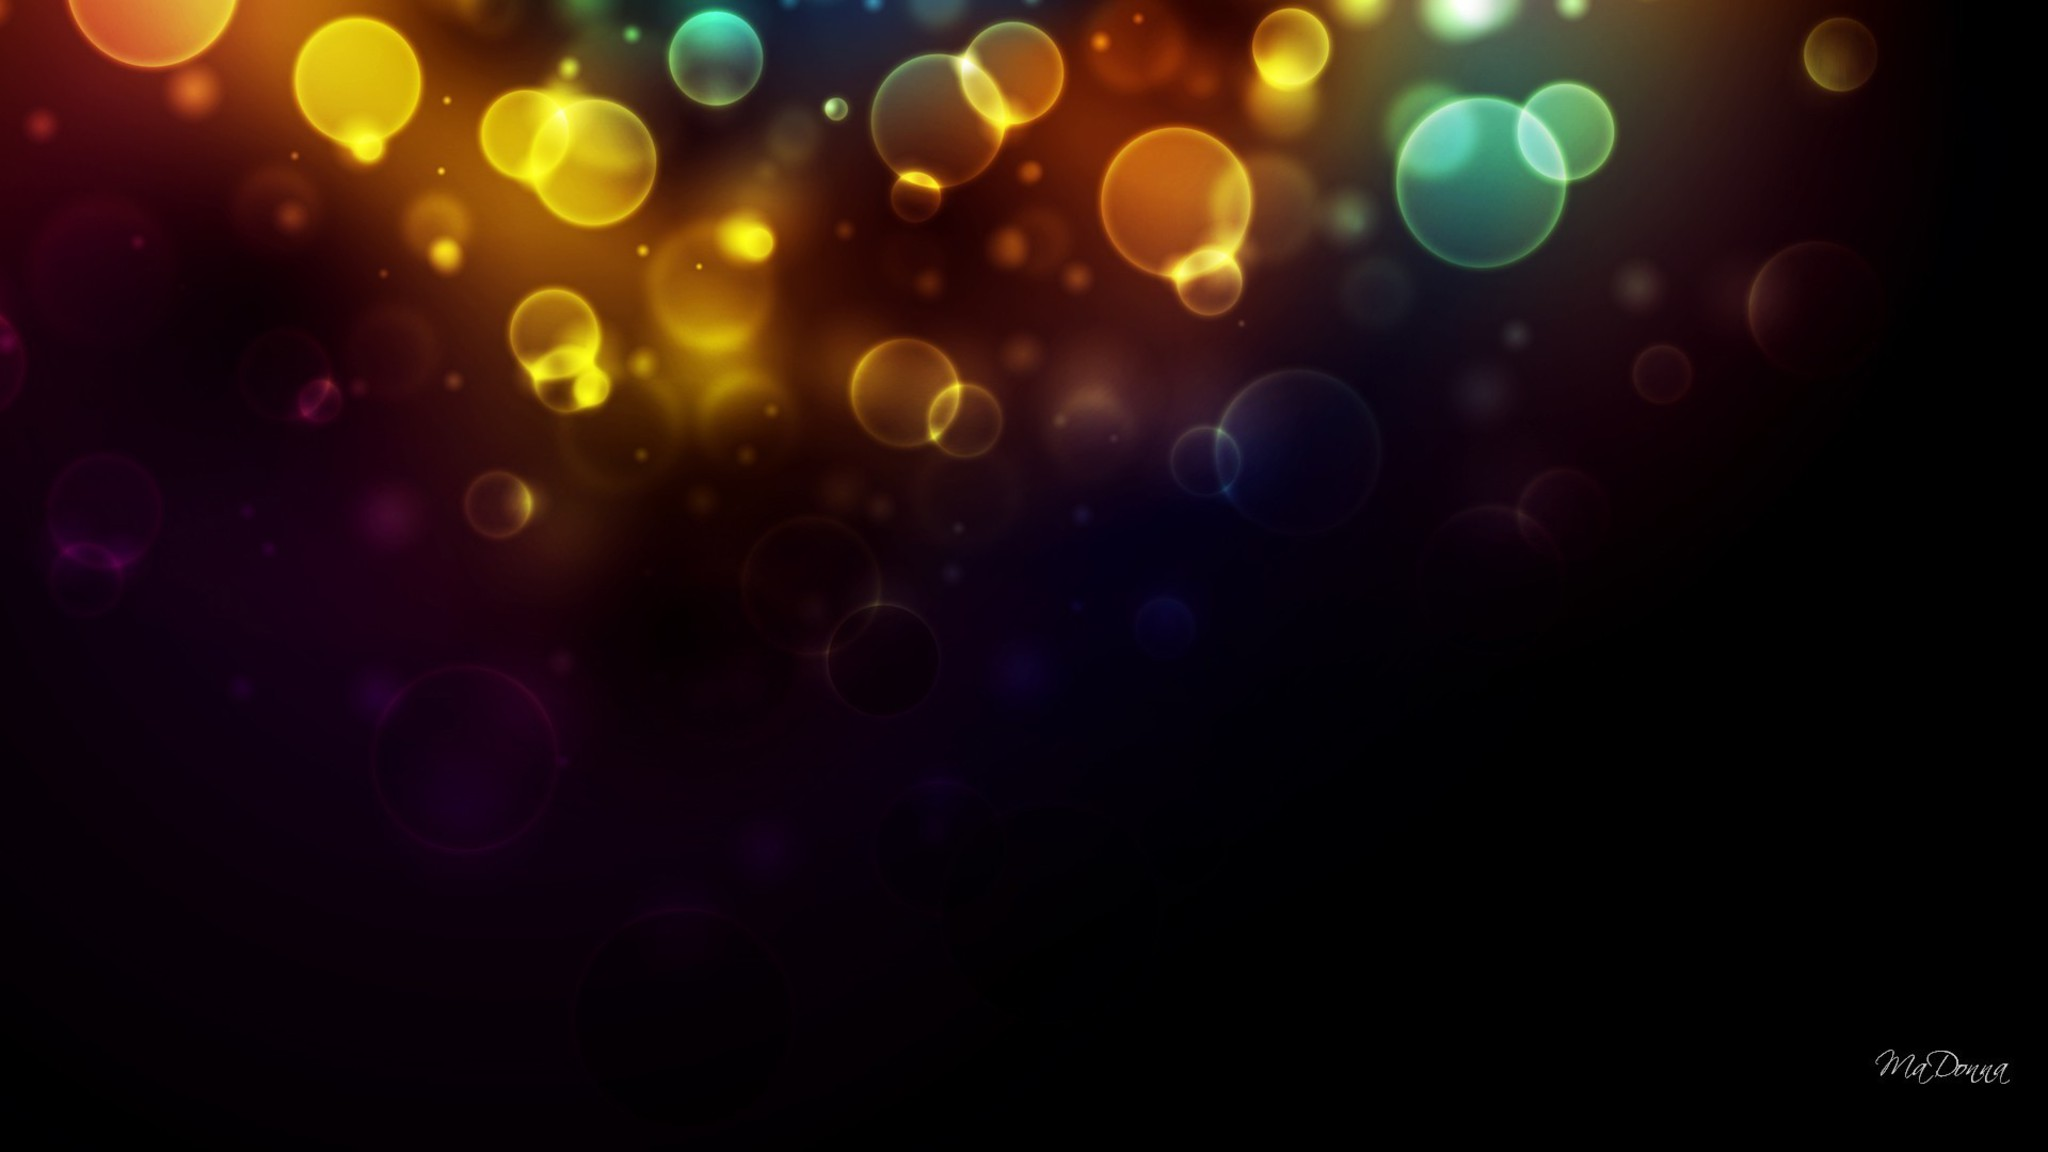 all hd wallpaper bokeh - photo #12